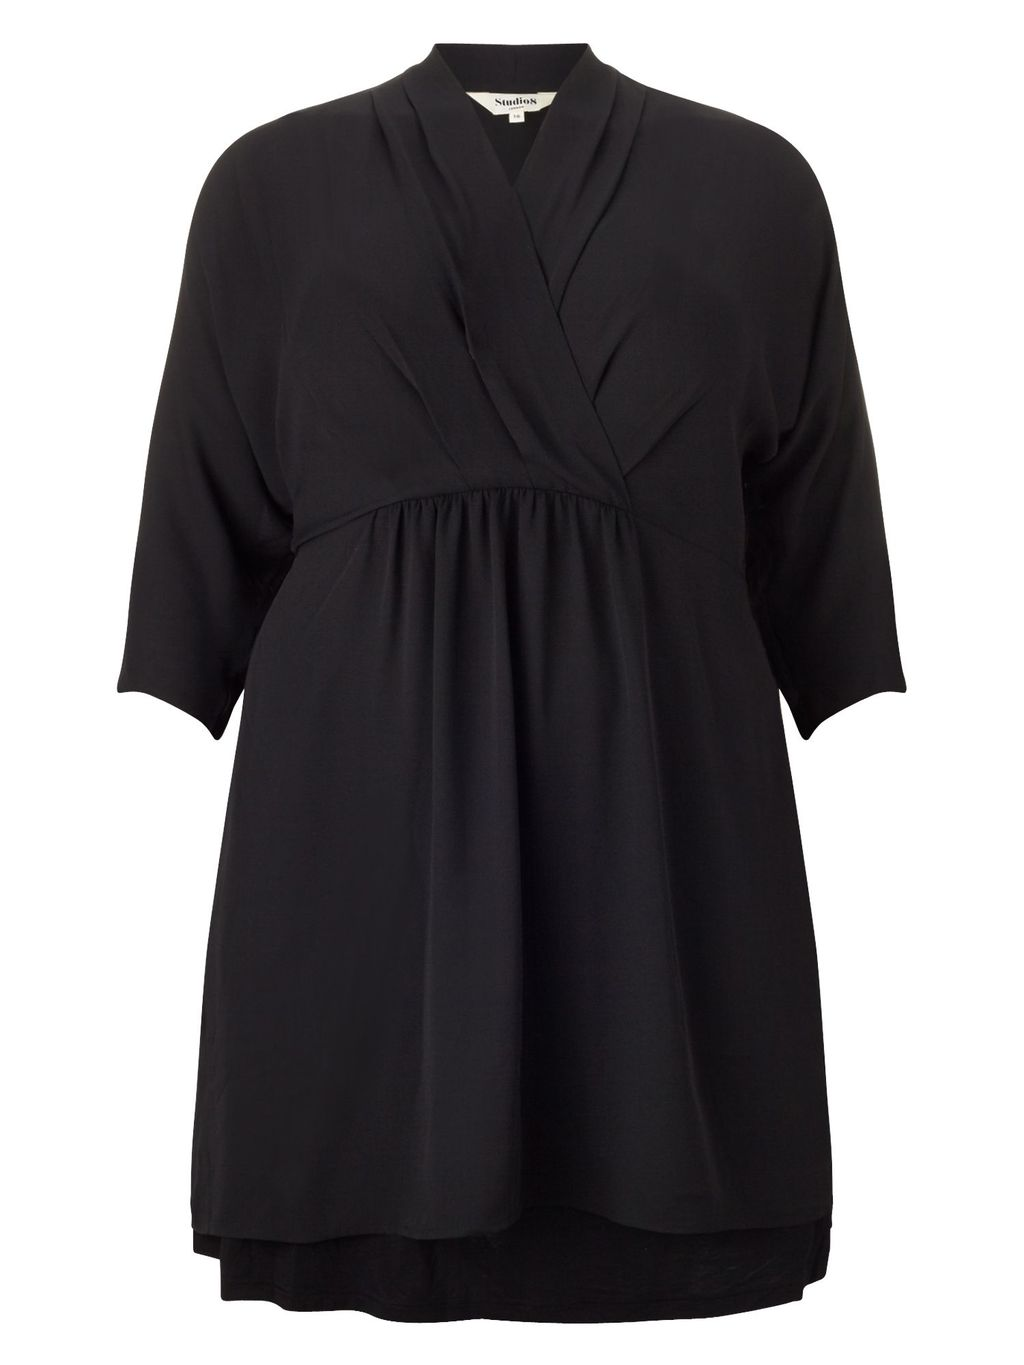 Annie Tunic Dress, Black - style: shift; length: mid thigh; neckline: v-neck; fit: empire; pattern: plain; predominant colour: black; occasions: casual, evening, creative work; fibres: polyester/polyamide - 100%; sleeve length: half sleeve; sleeve style: standard; texture group: crepes; pattern type: fabric; season: a/w 2015; wardrobe: basic